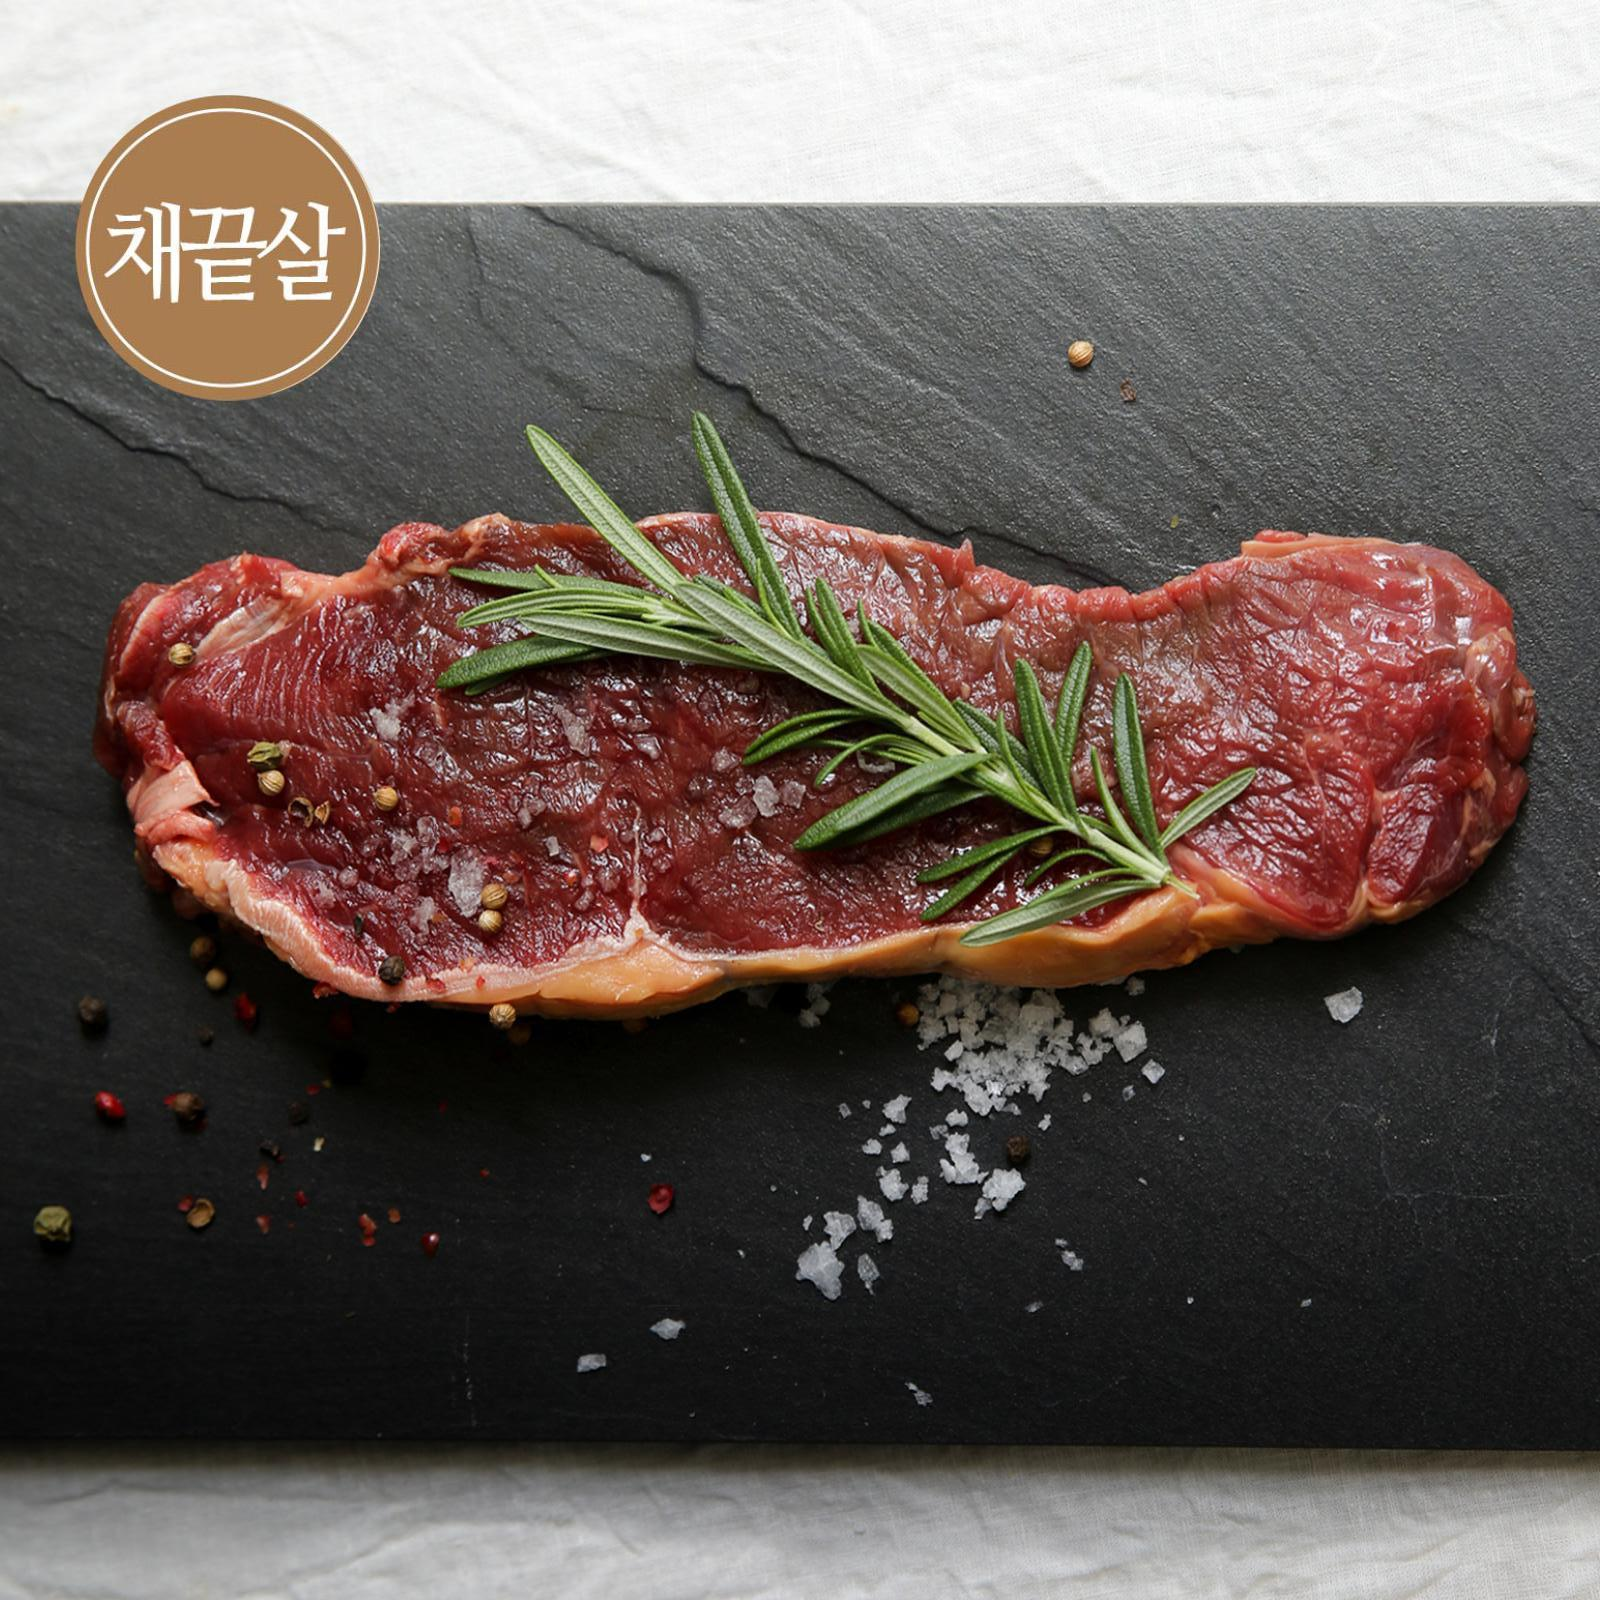 The Butcher's Dining Grass Fed Prime Striploin Beef Steak - New Zealand